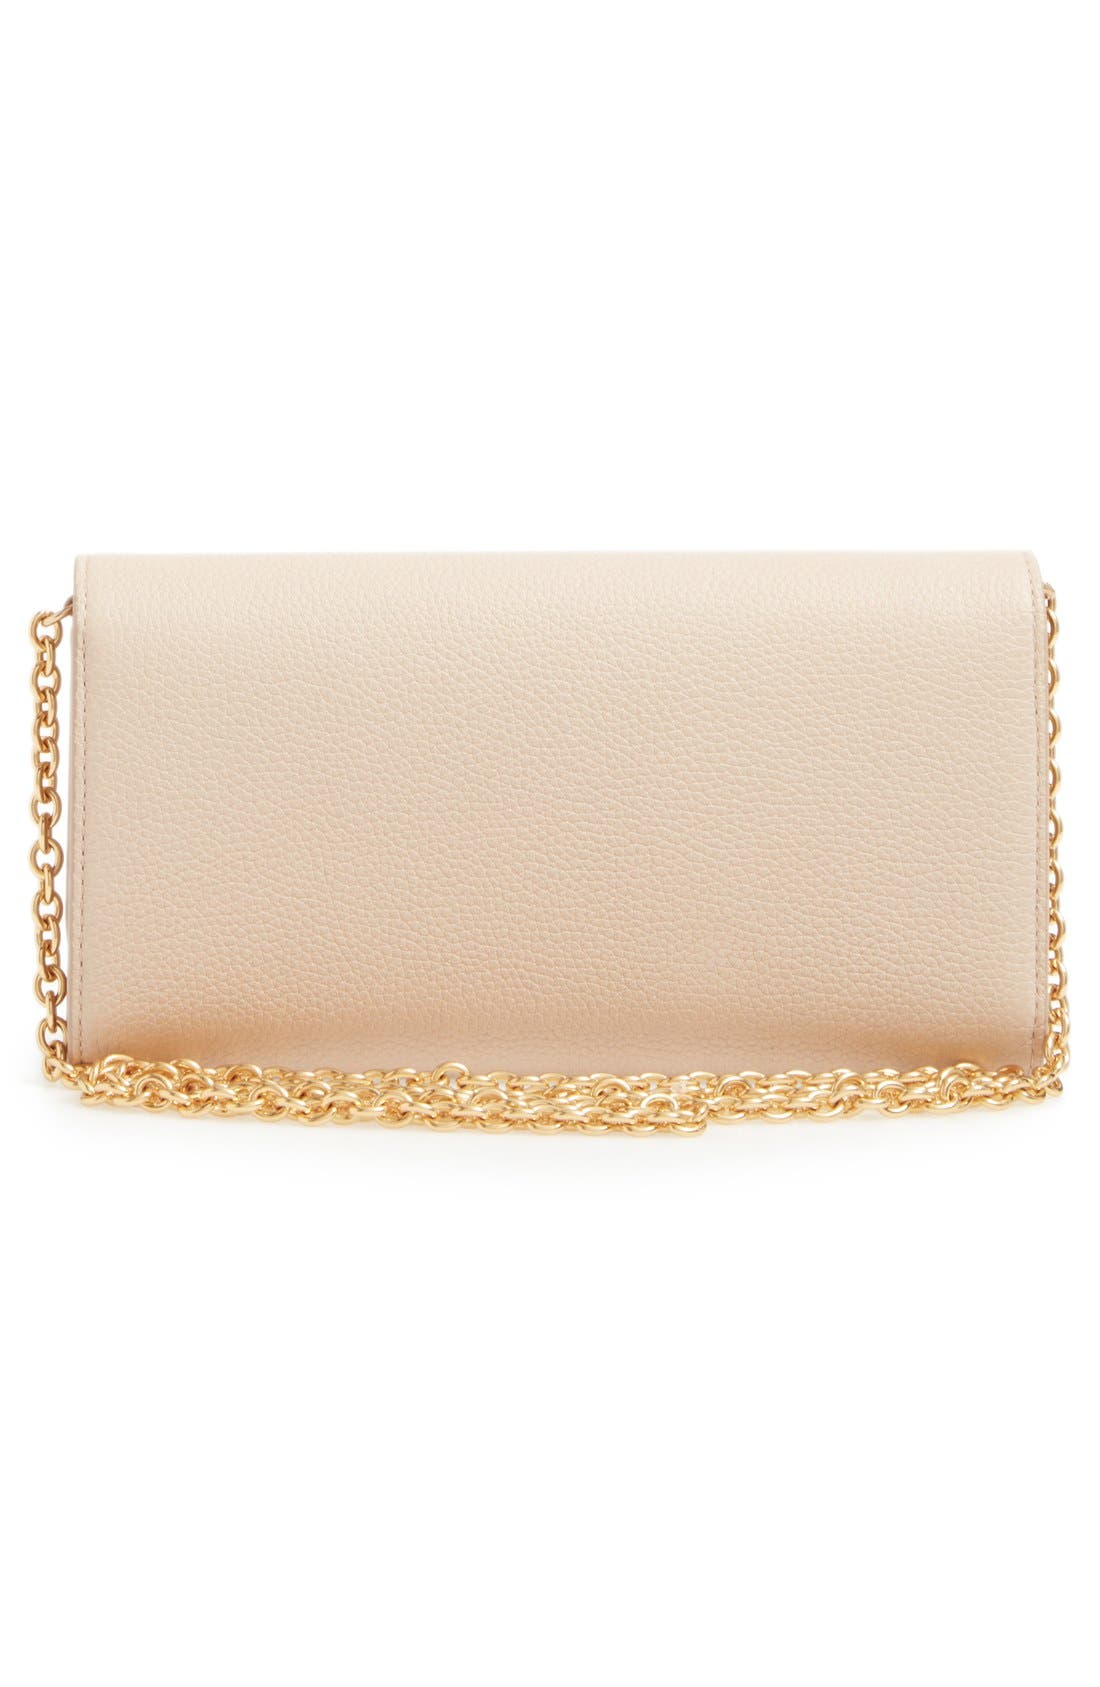 'Continental - Classic' Convertible Leather Clutch,                             Alternate thumbnail 6, color,